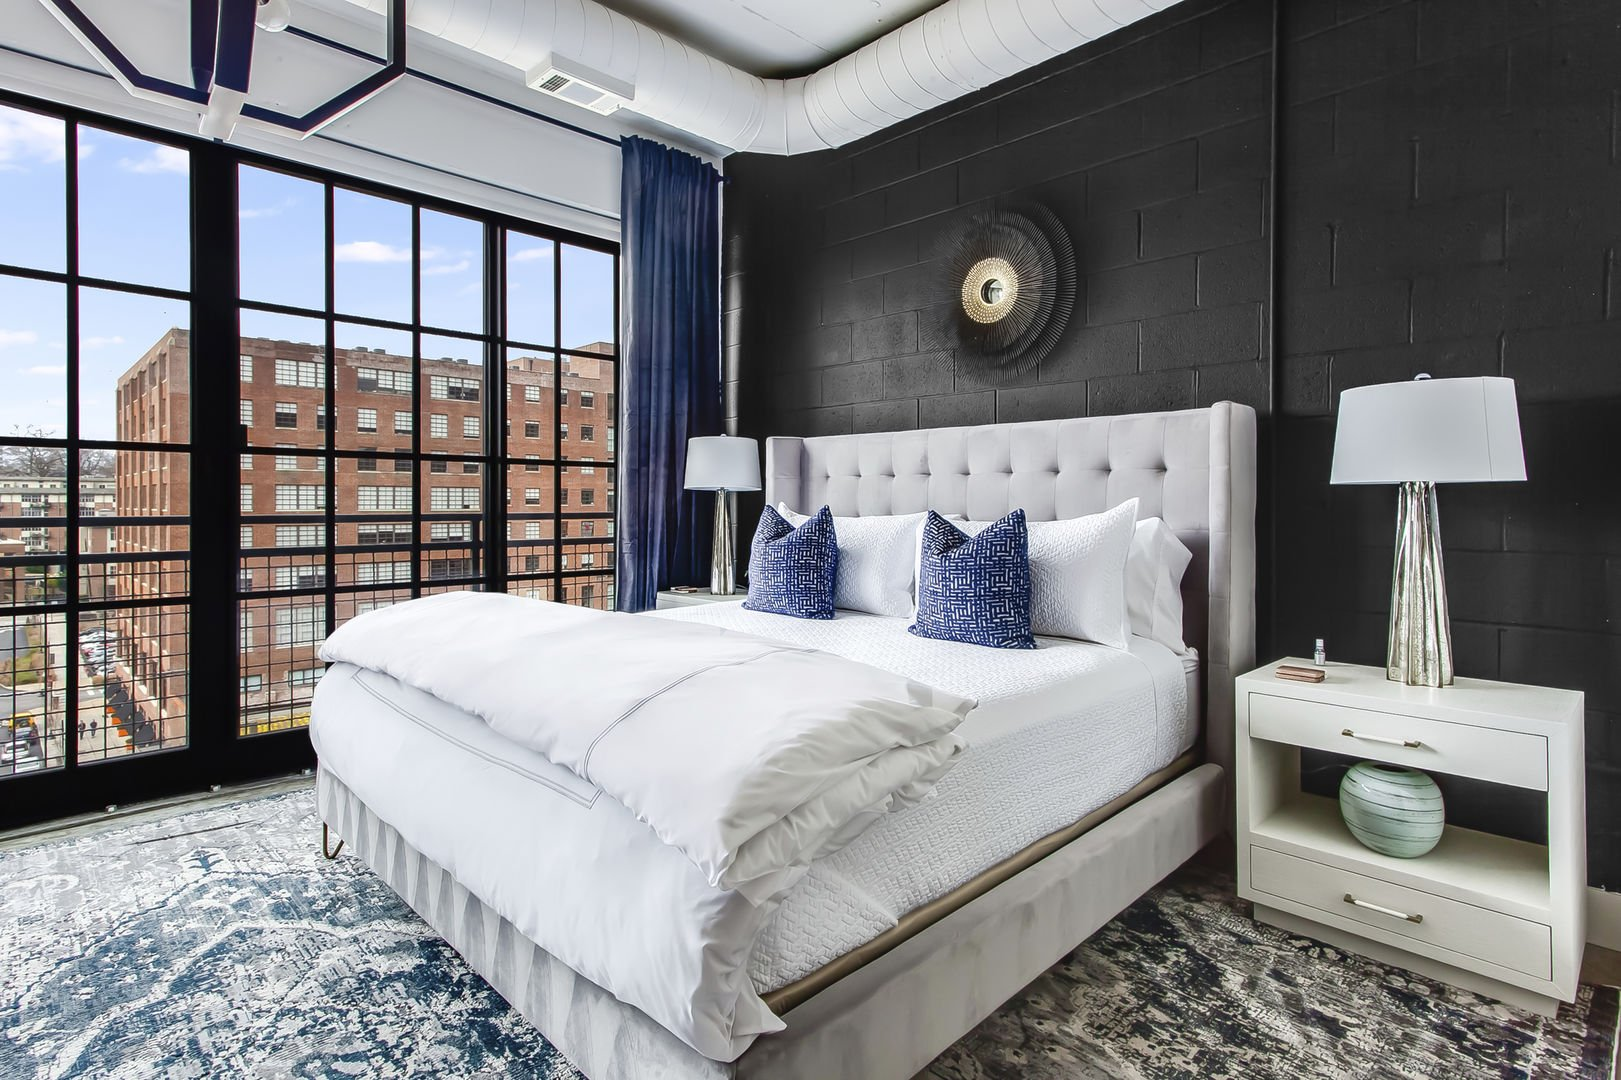 Sleeping area with Upscale Furniture in Ponce City Marketplace Apartment